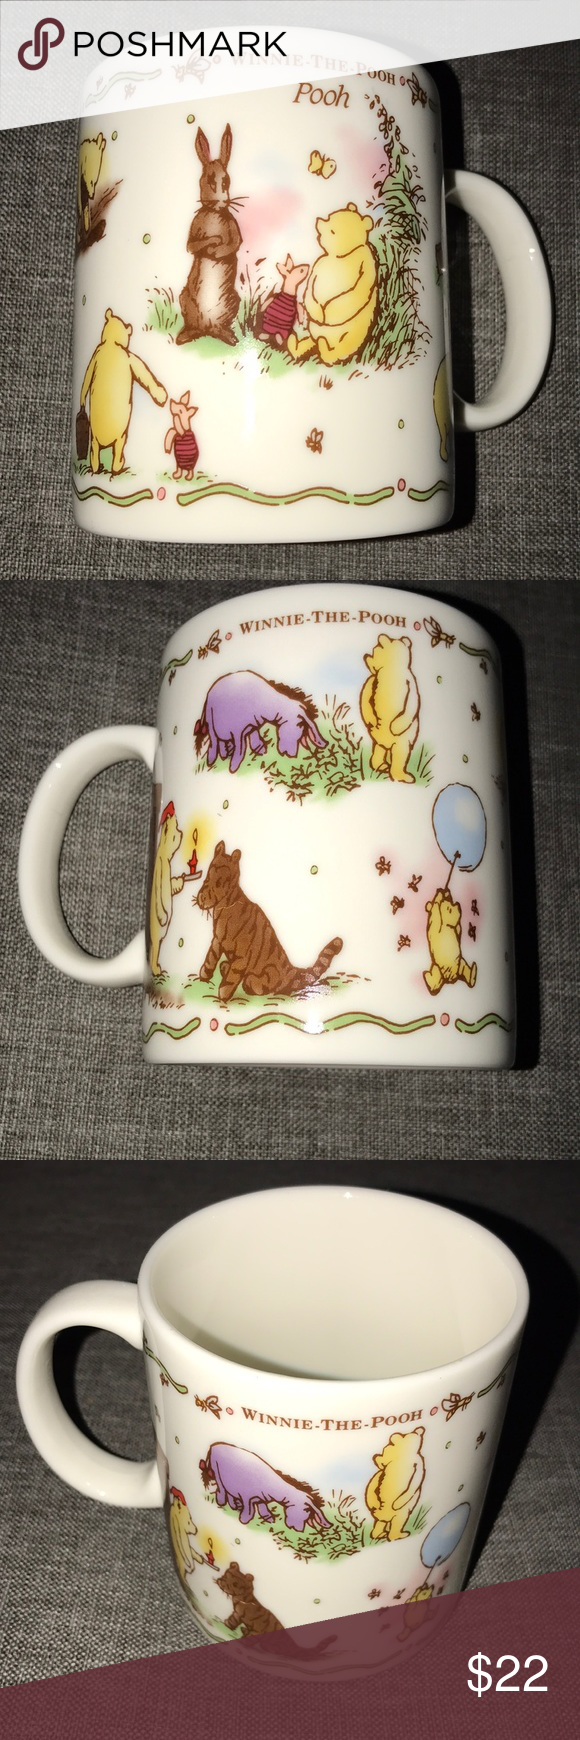 Classic pooh coffee mug Classic pooh coffee mug made in Japan beautiful sharp pictures Disney Other #disneycoffeemugs Classic pooh coffee mug Classic pooh coffee mug made in Japan beautiful sharp pictures Disney Other #disneycoffeemugs